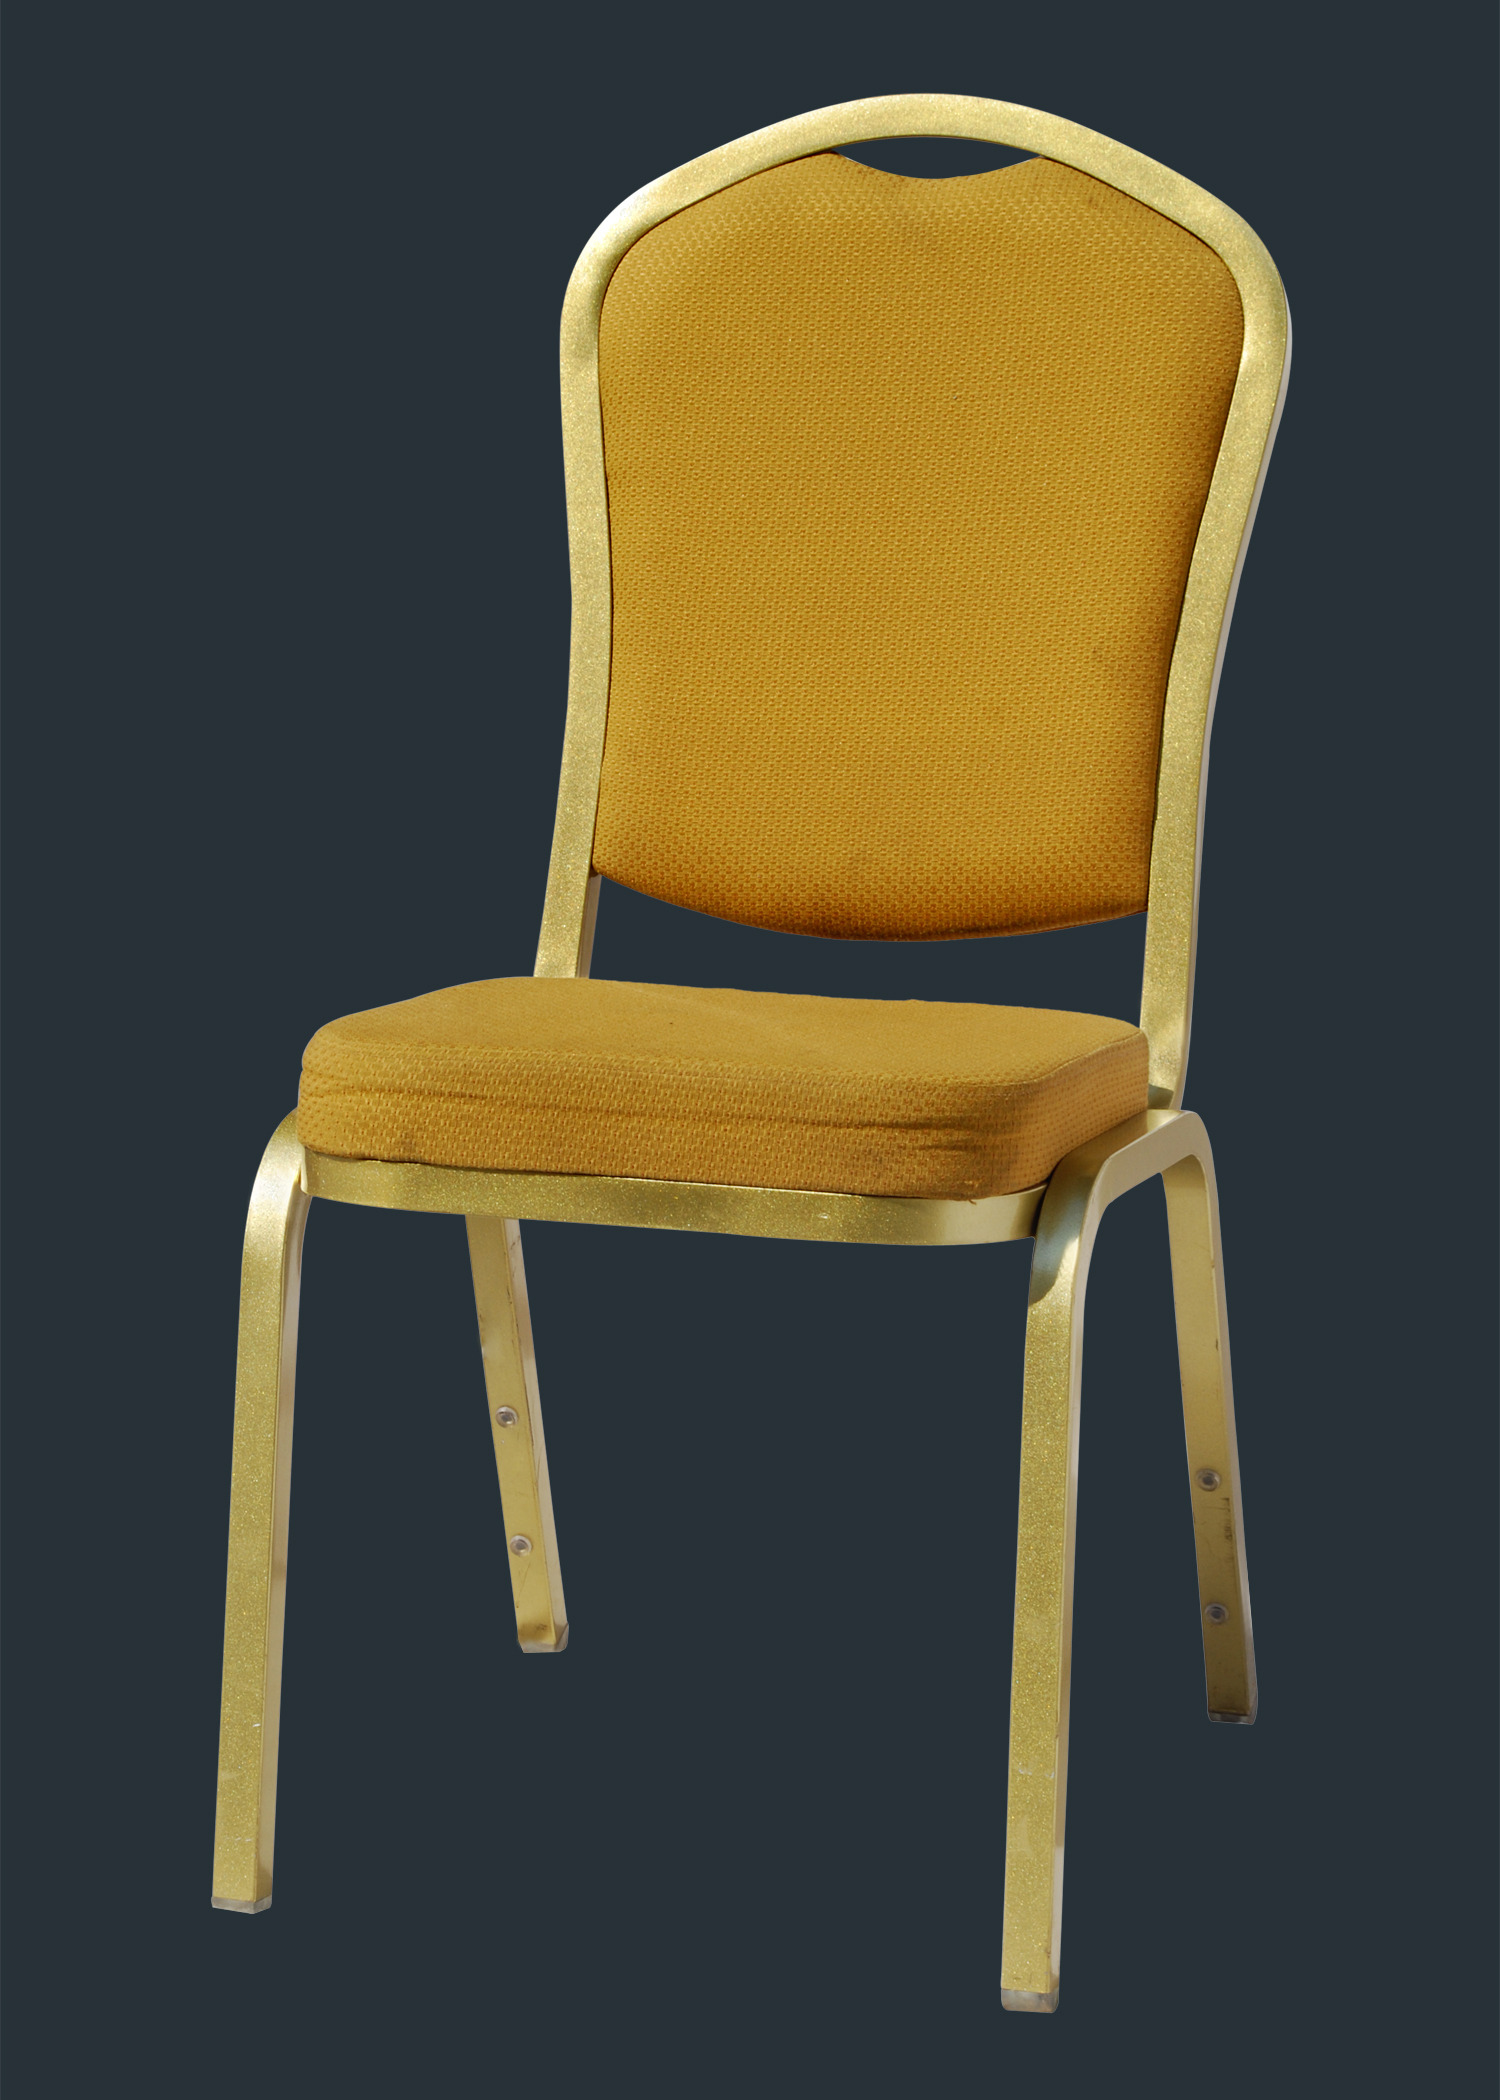 wood banquet chairs. Banquet Chair Wood Chairs